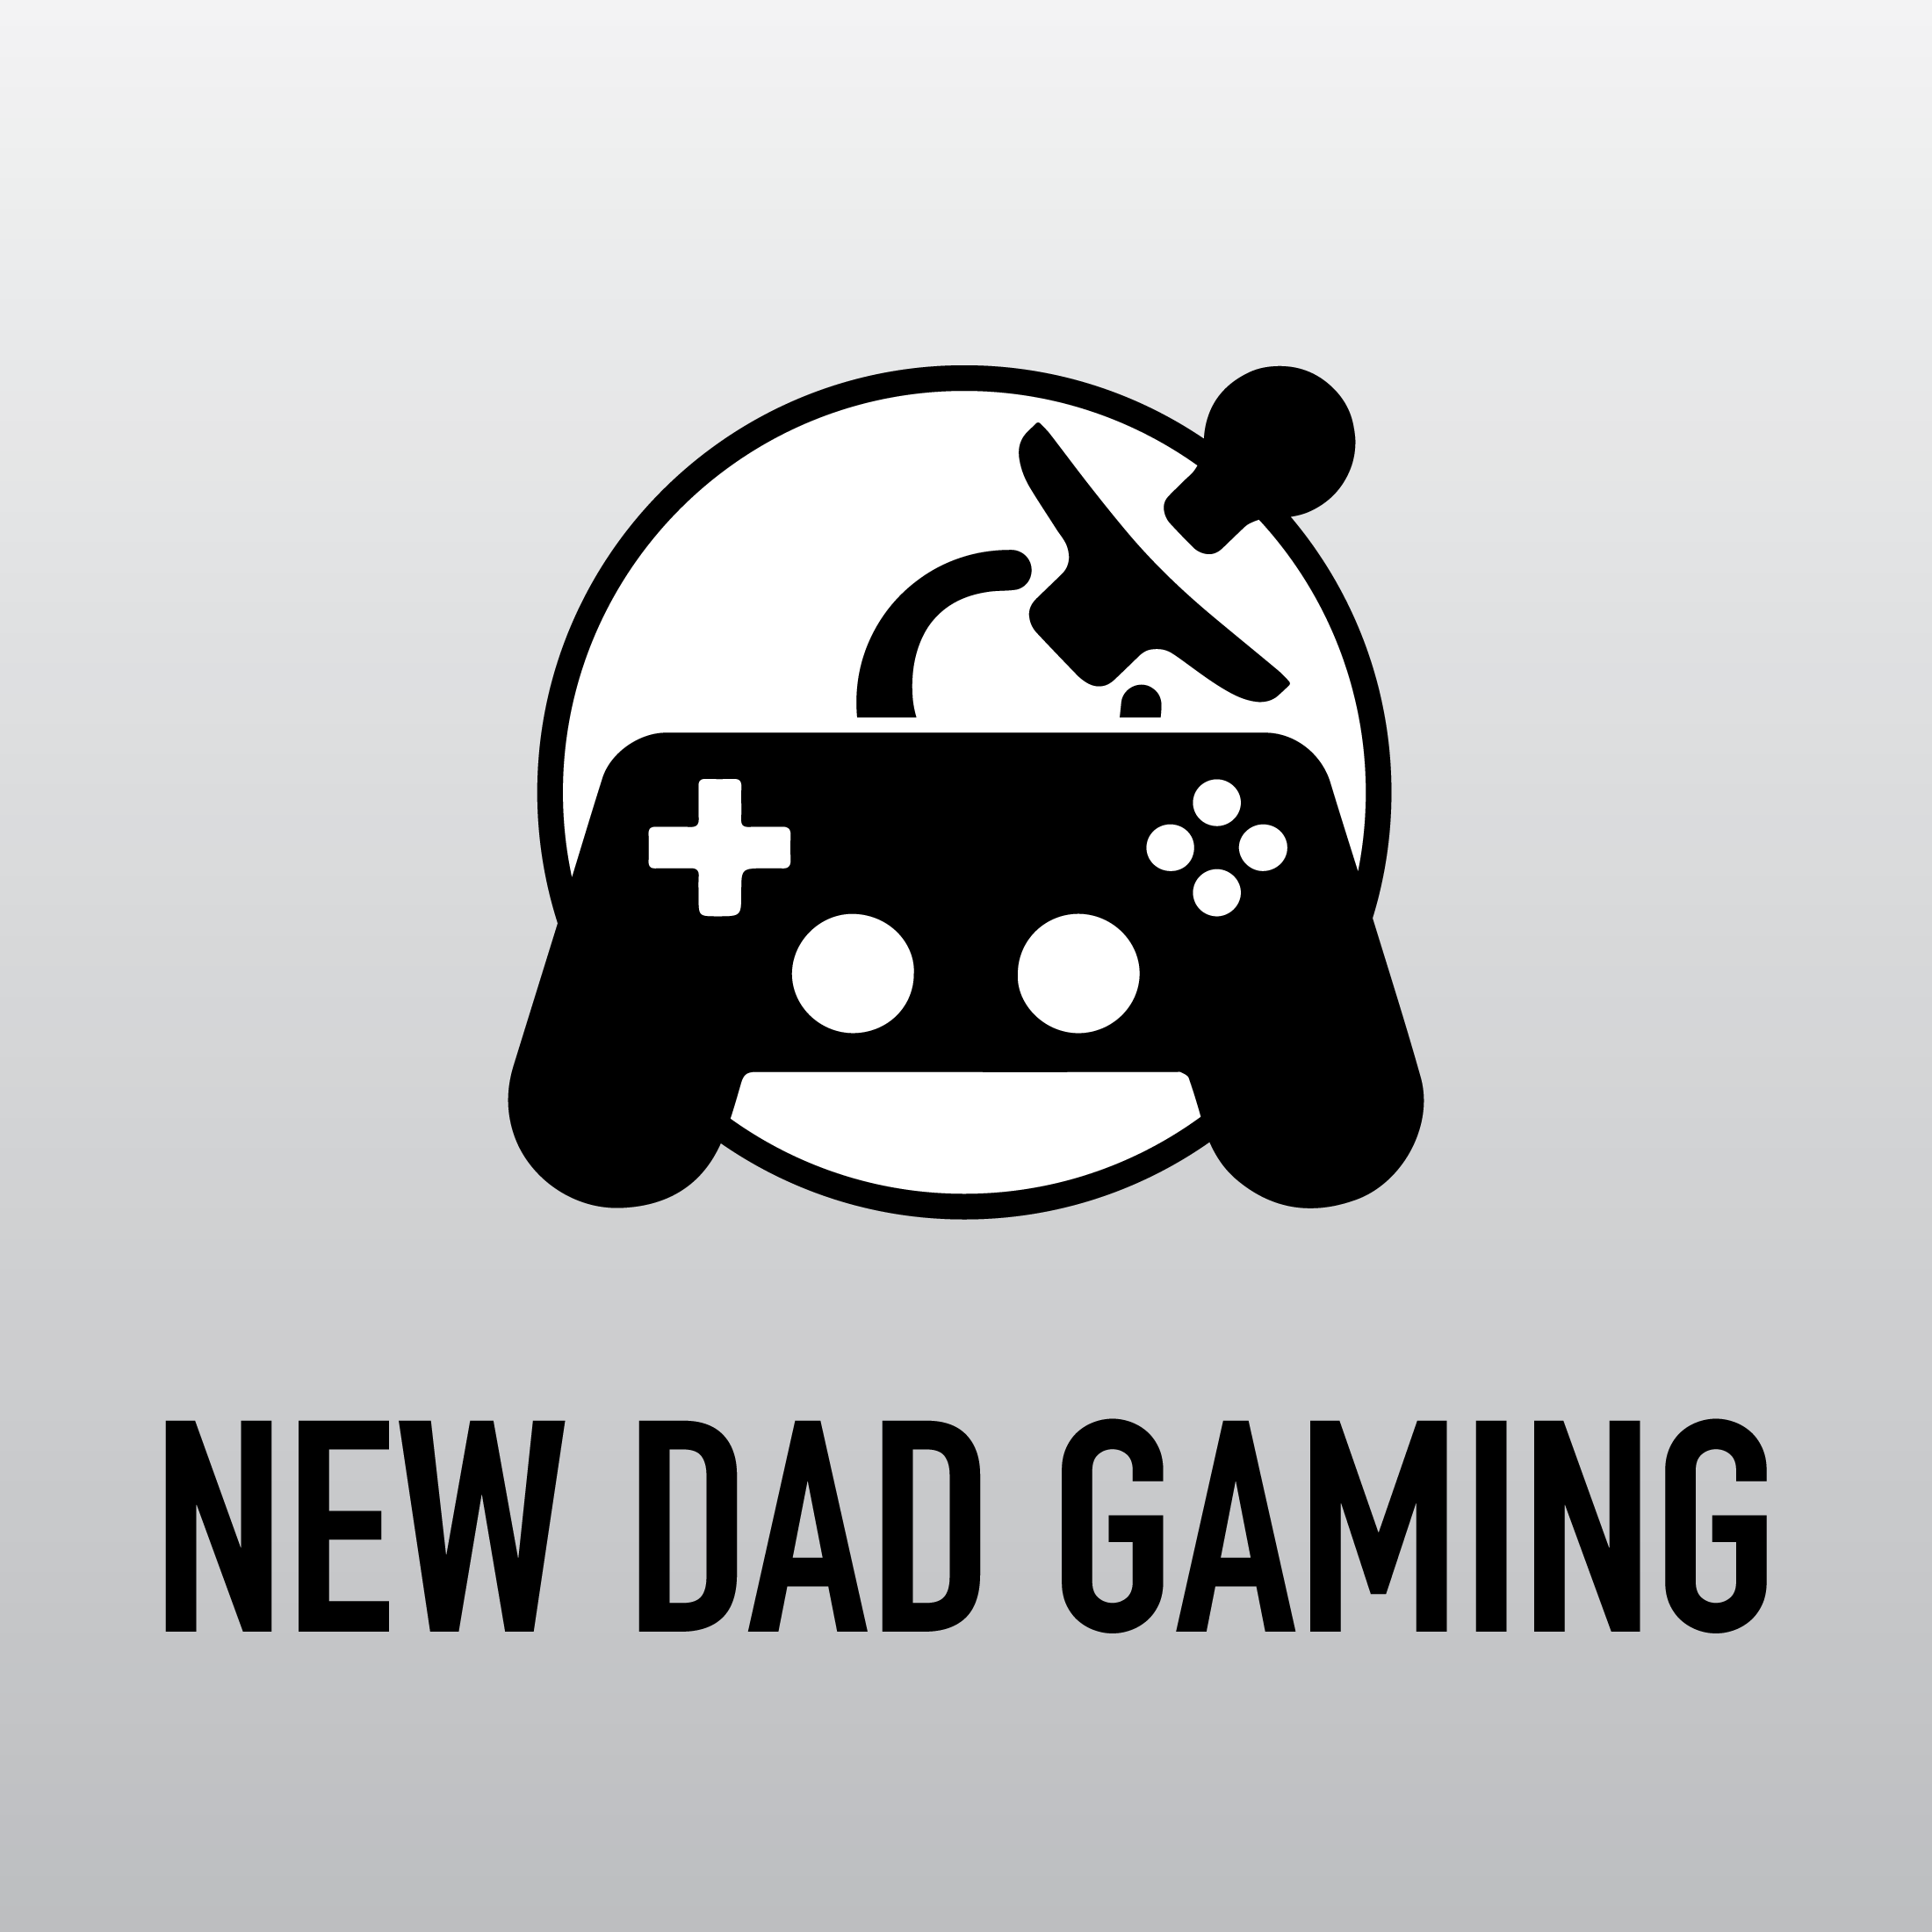 New Dad Gaming - Episode 92 - Virtual Reviewality